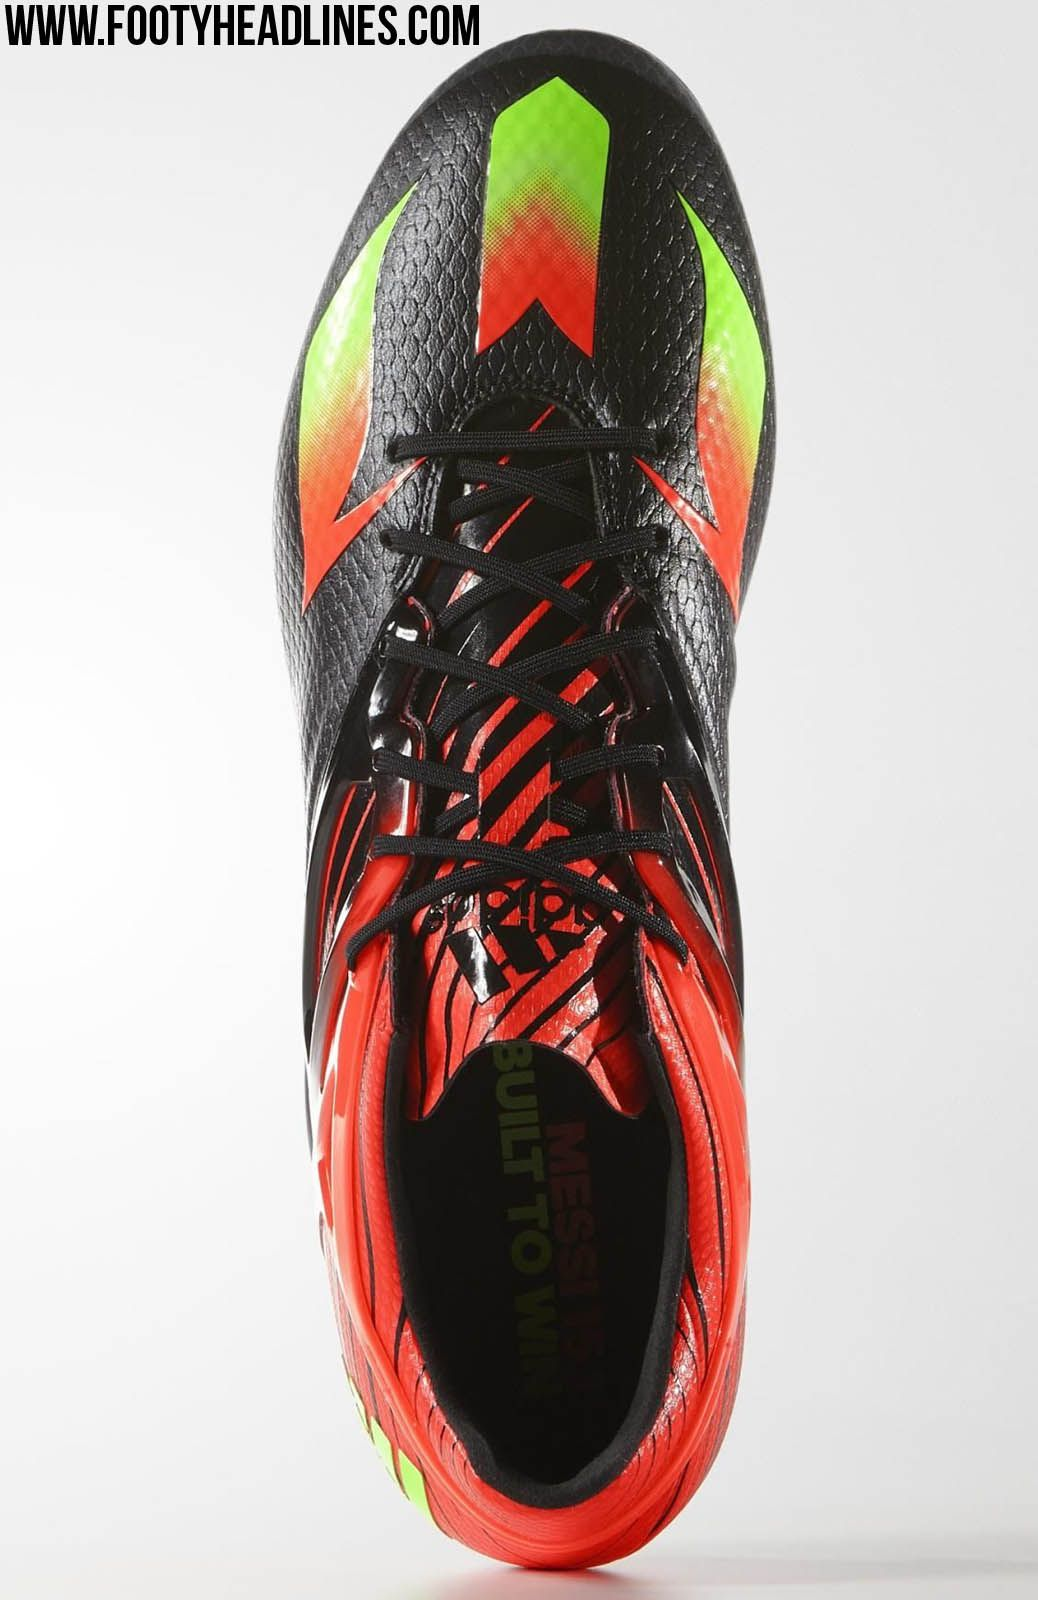 save off cbb8f cbb03 The new black  red Adidas Messi Football Boot features an extremely bold  design. Leo Messi is set to wear the new Black  Solar Red  Green Adidas  Messi ...